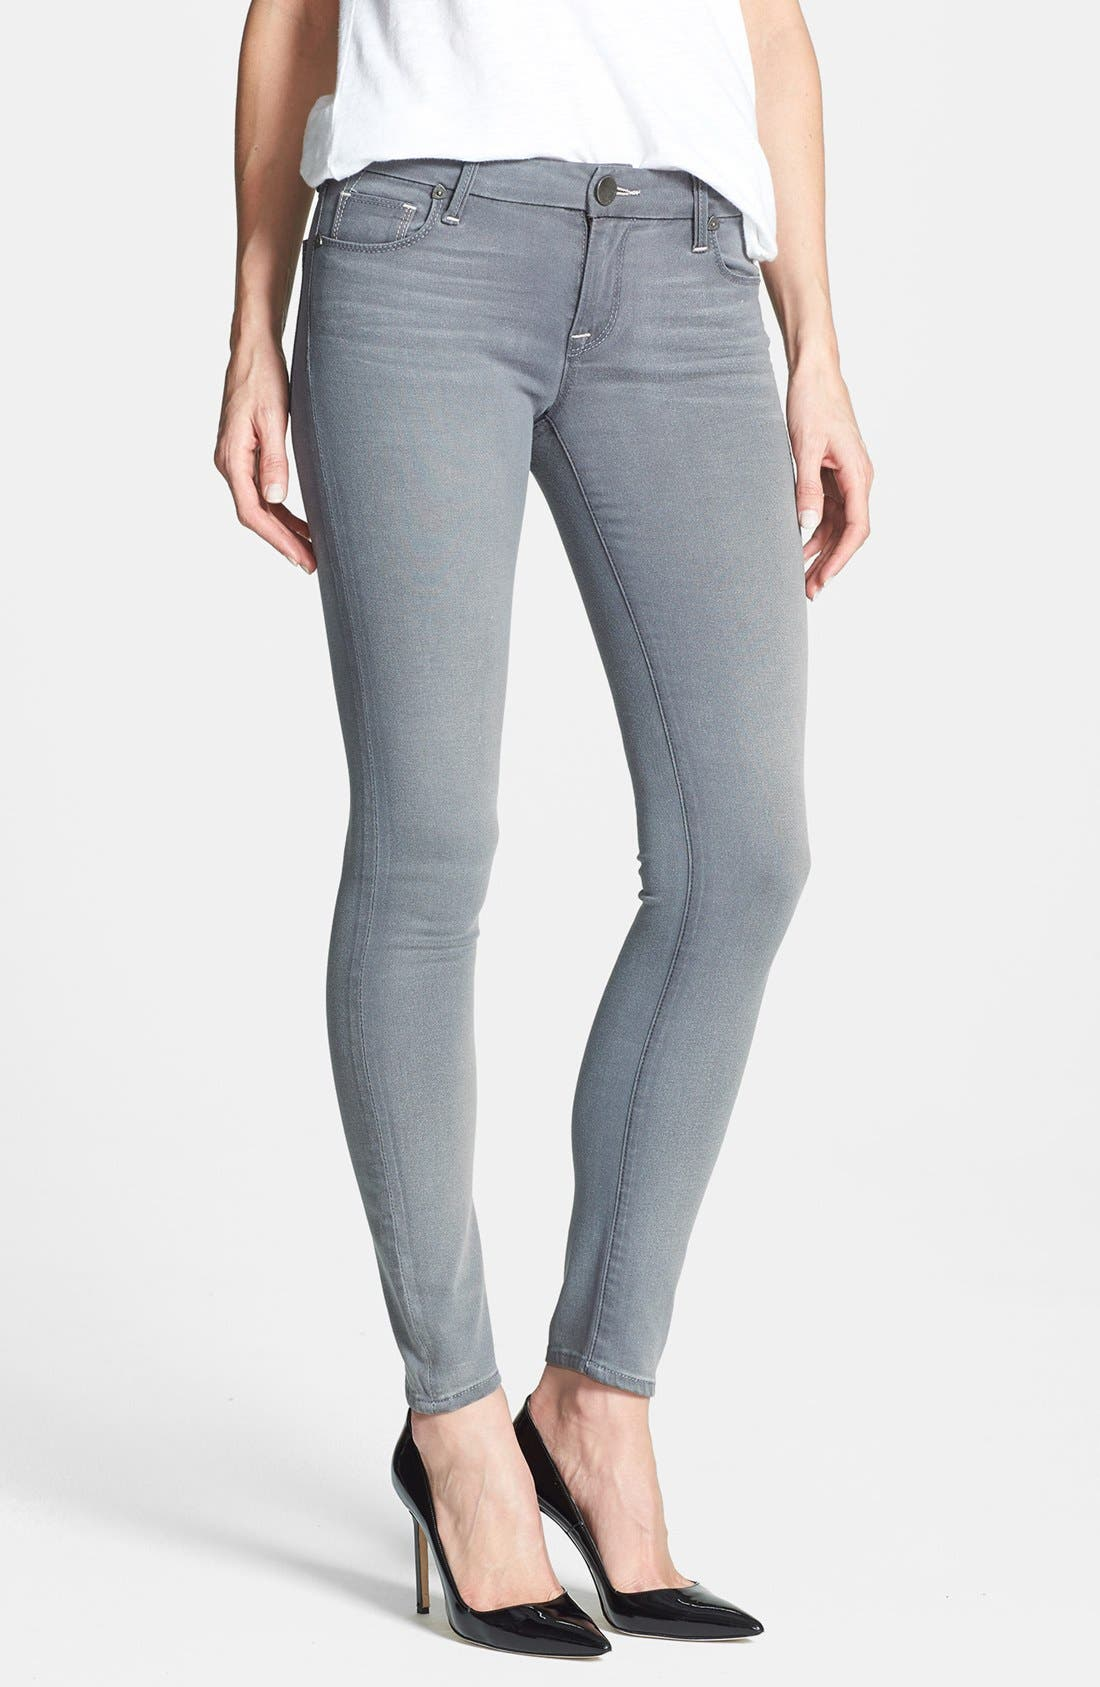 Alternate Image 1 Selected - KUT from the Kloth 'Mia' Skinny Jeans (Notorious)